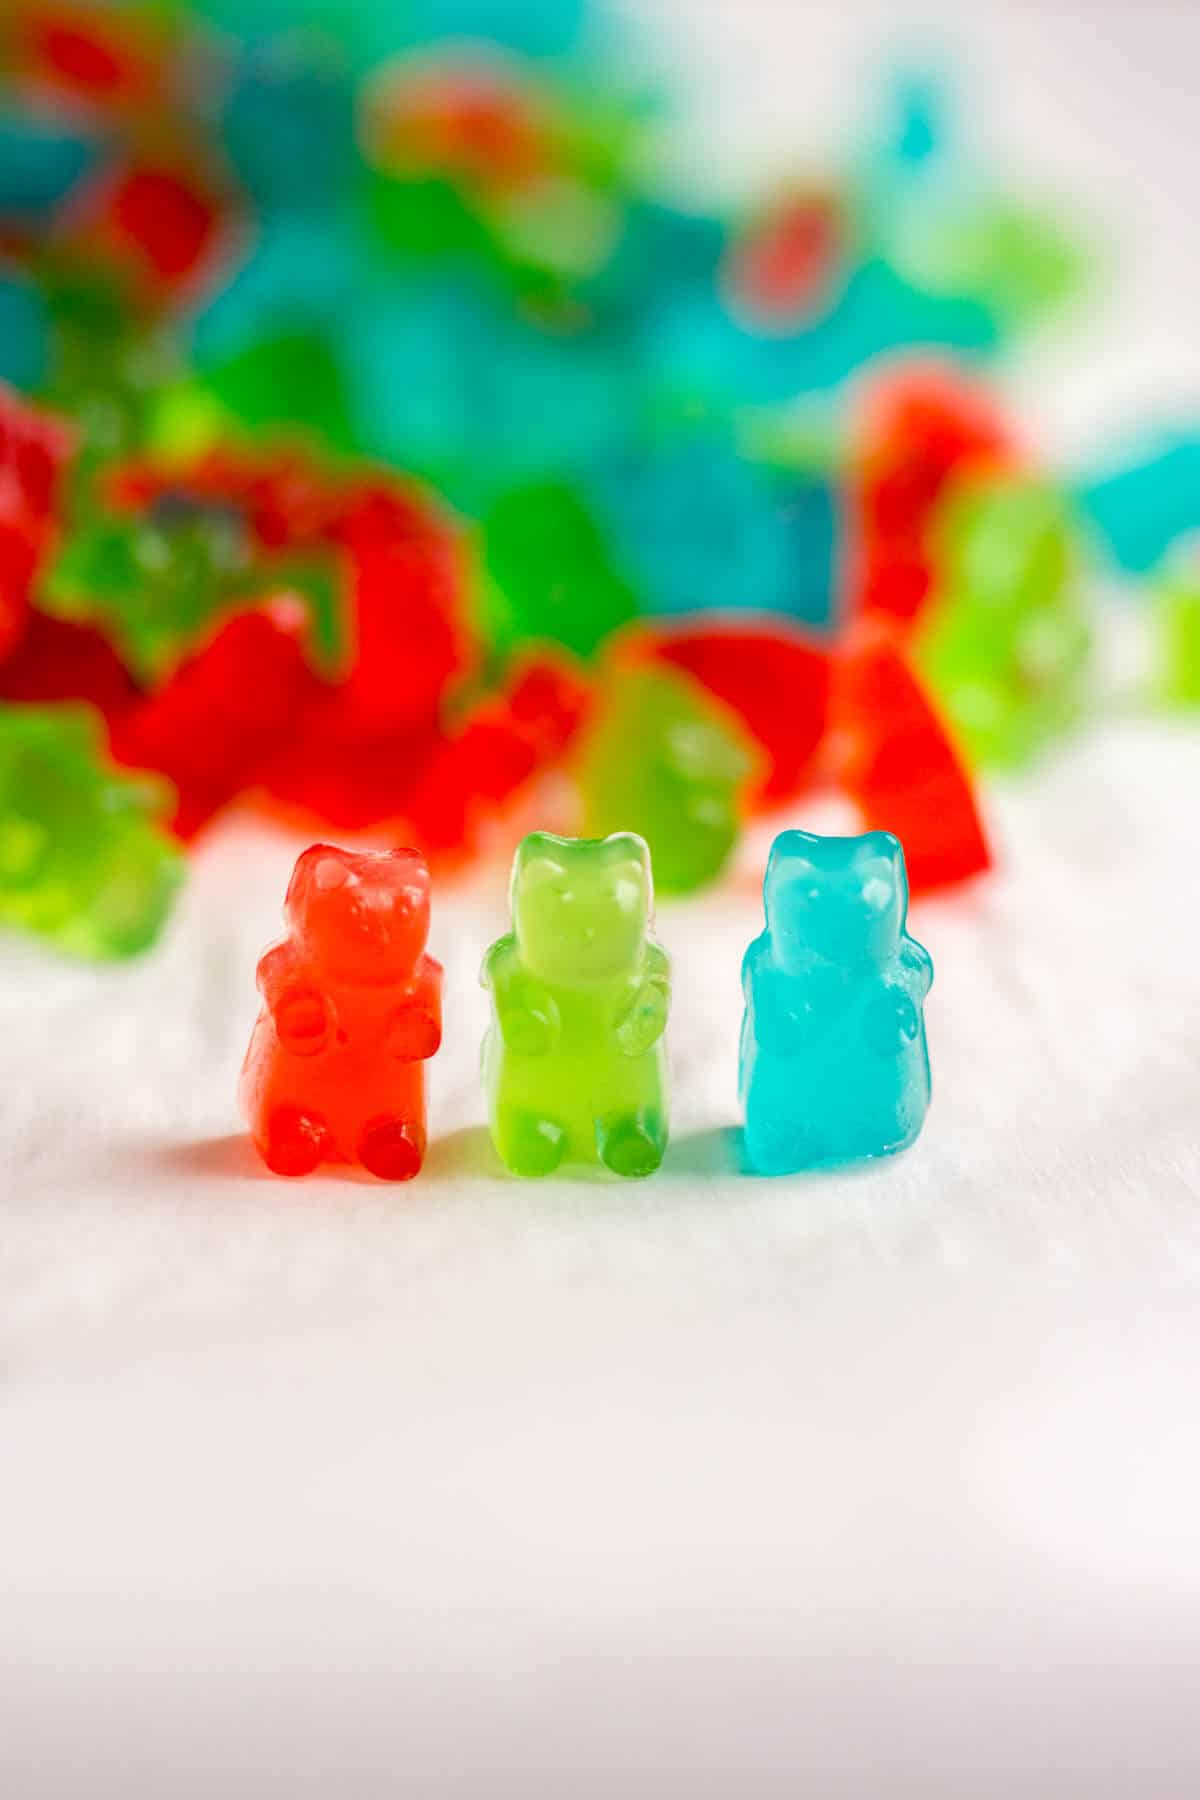 Pre-workout gummies are the perfect pre-workout pick me up! They're so easy to make and they will give you so much energy to get you through your workout. 3 ingredients and 5 steps are all you need to make this easy snack.